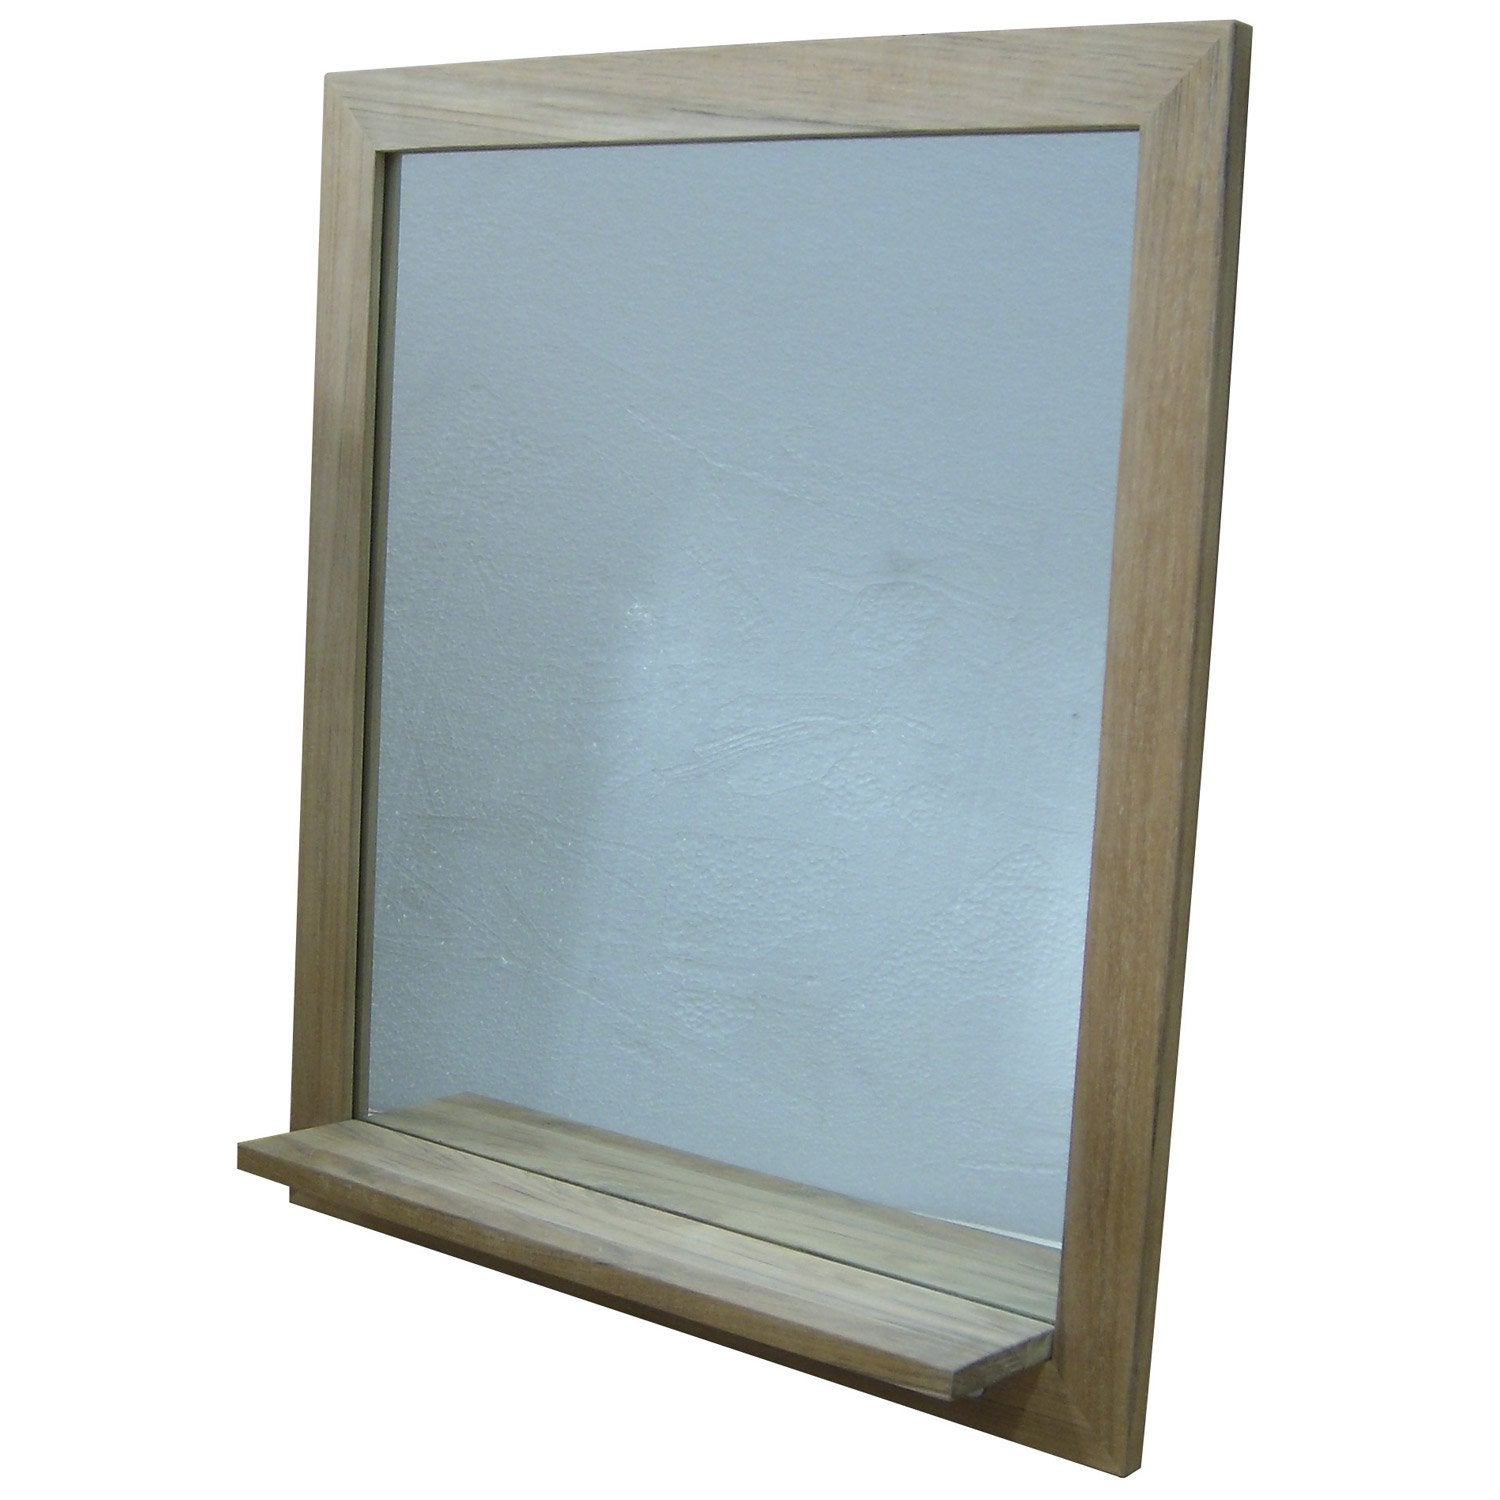 Miroir Decoratif Leroy Merlin Of Miroir En Teck Naturel Avec Tablette Wellington